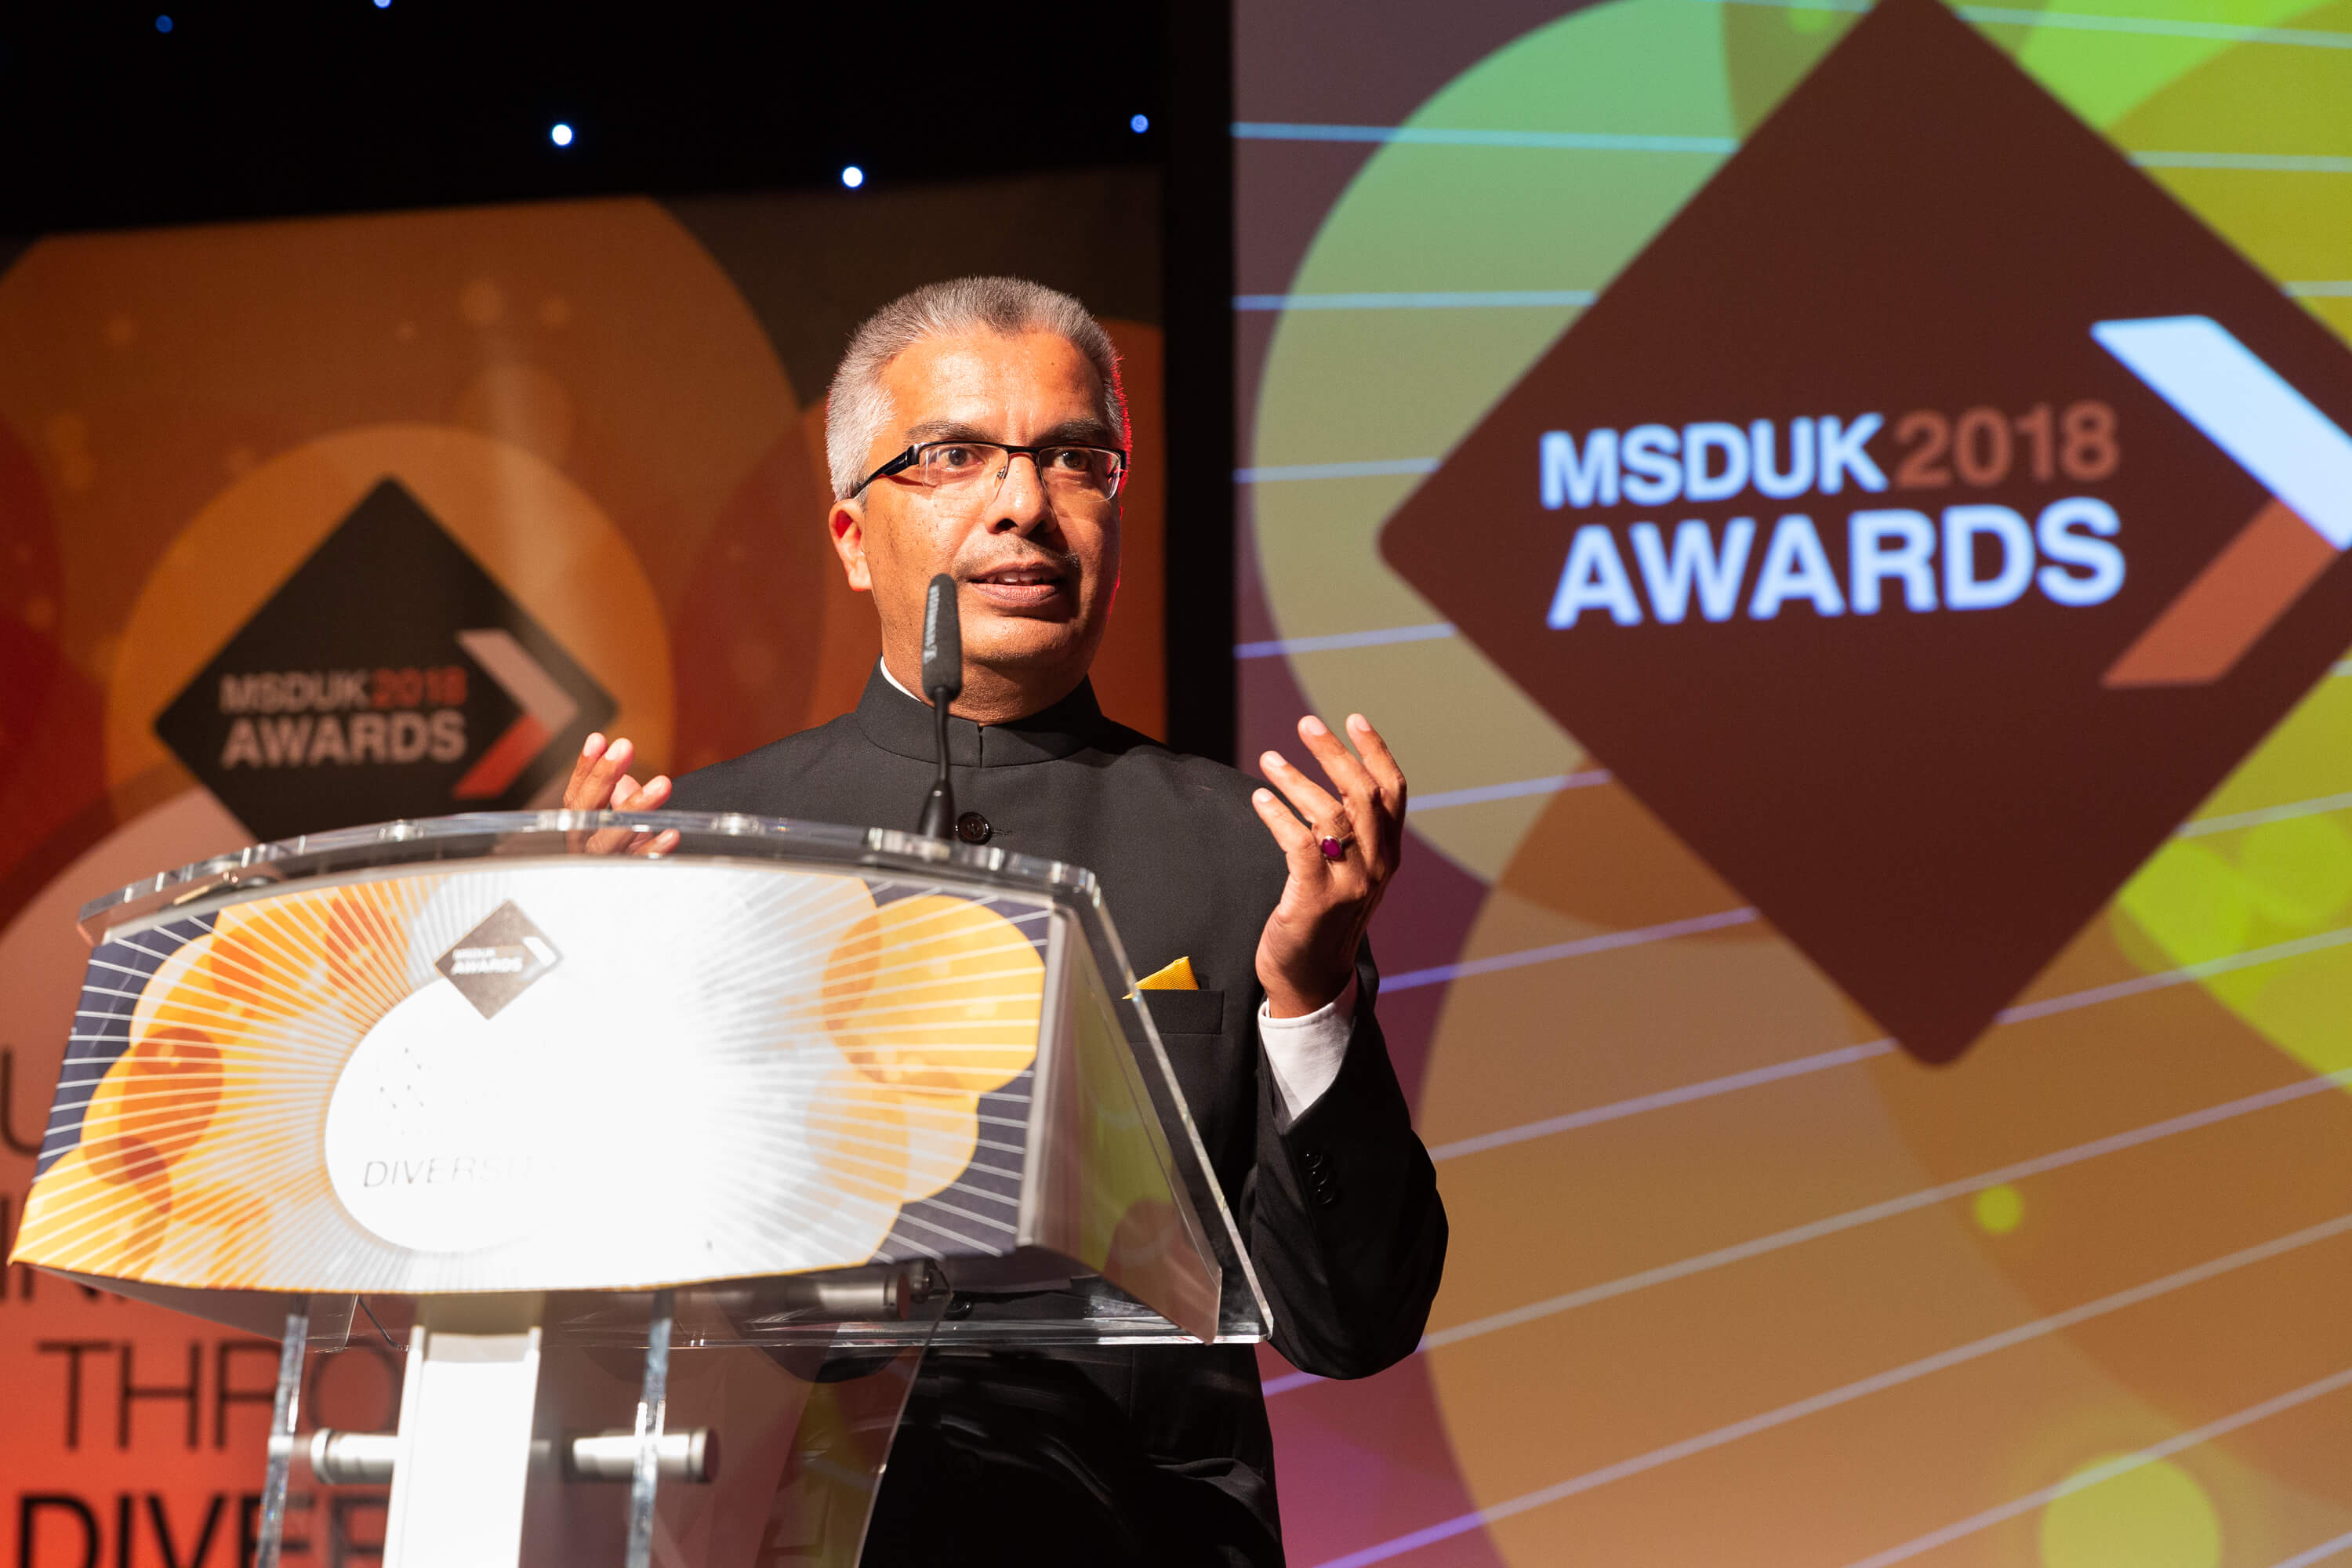 MSDUK Celebrates 15th year of diversity progression by hosting the biggest Supplier Diversity Conference & Awards in the UK